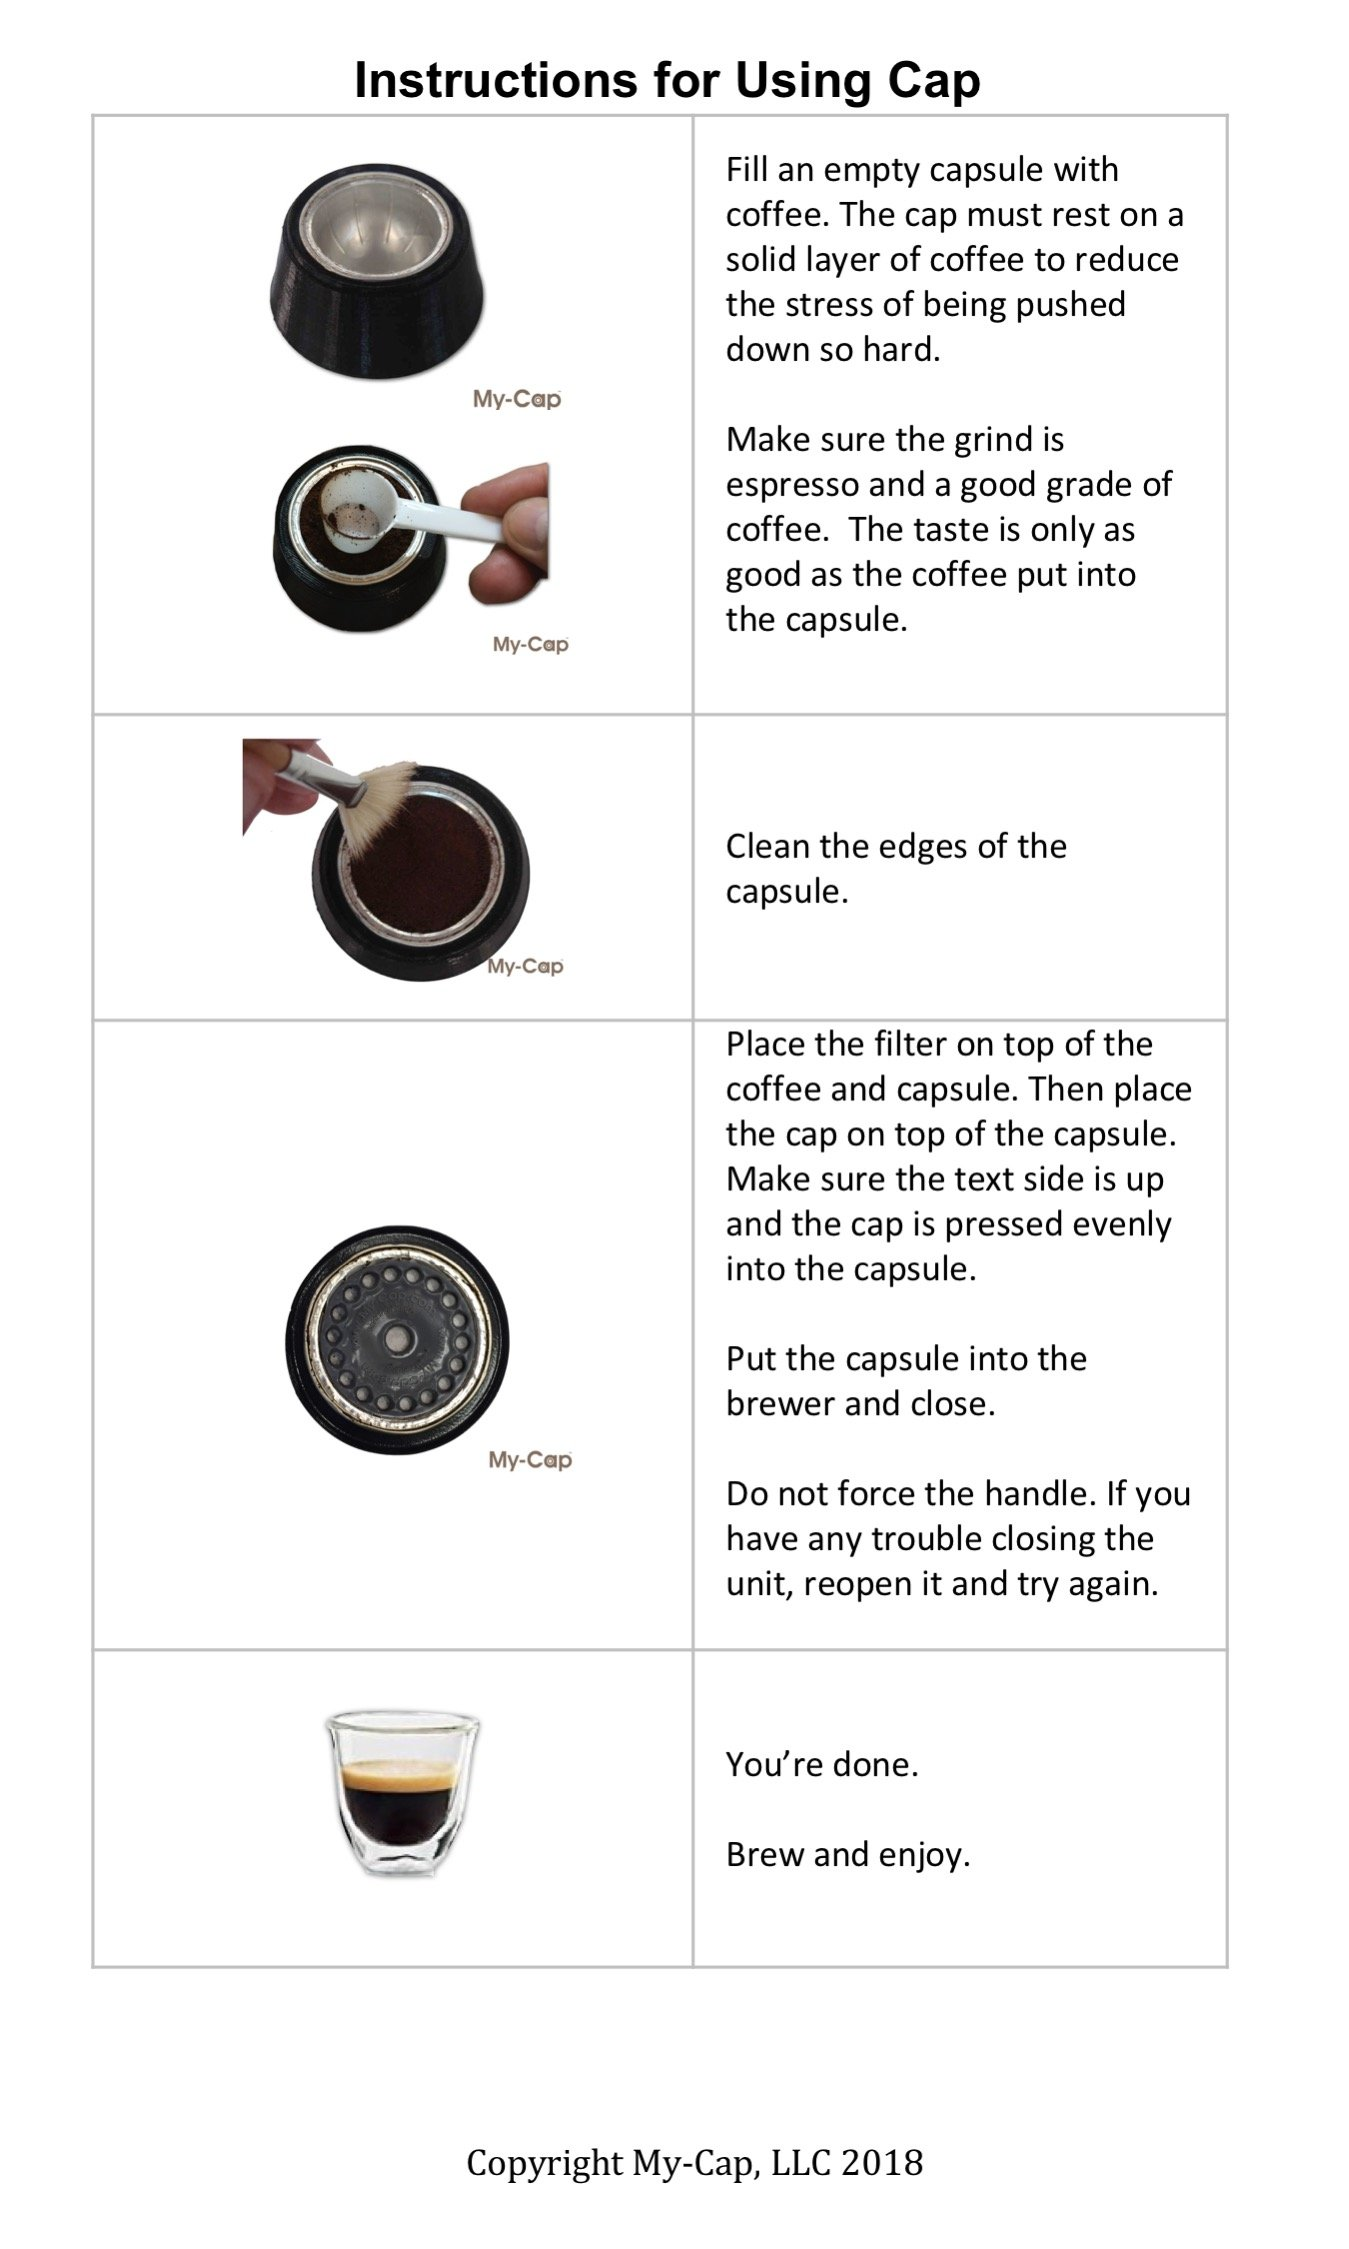 My-Cap vPACK - Complete Solution to Make Your Own Capsules and Pods for Nespresso VertuoLine Brewers by My-Cap (Image #3)